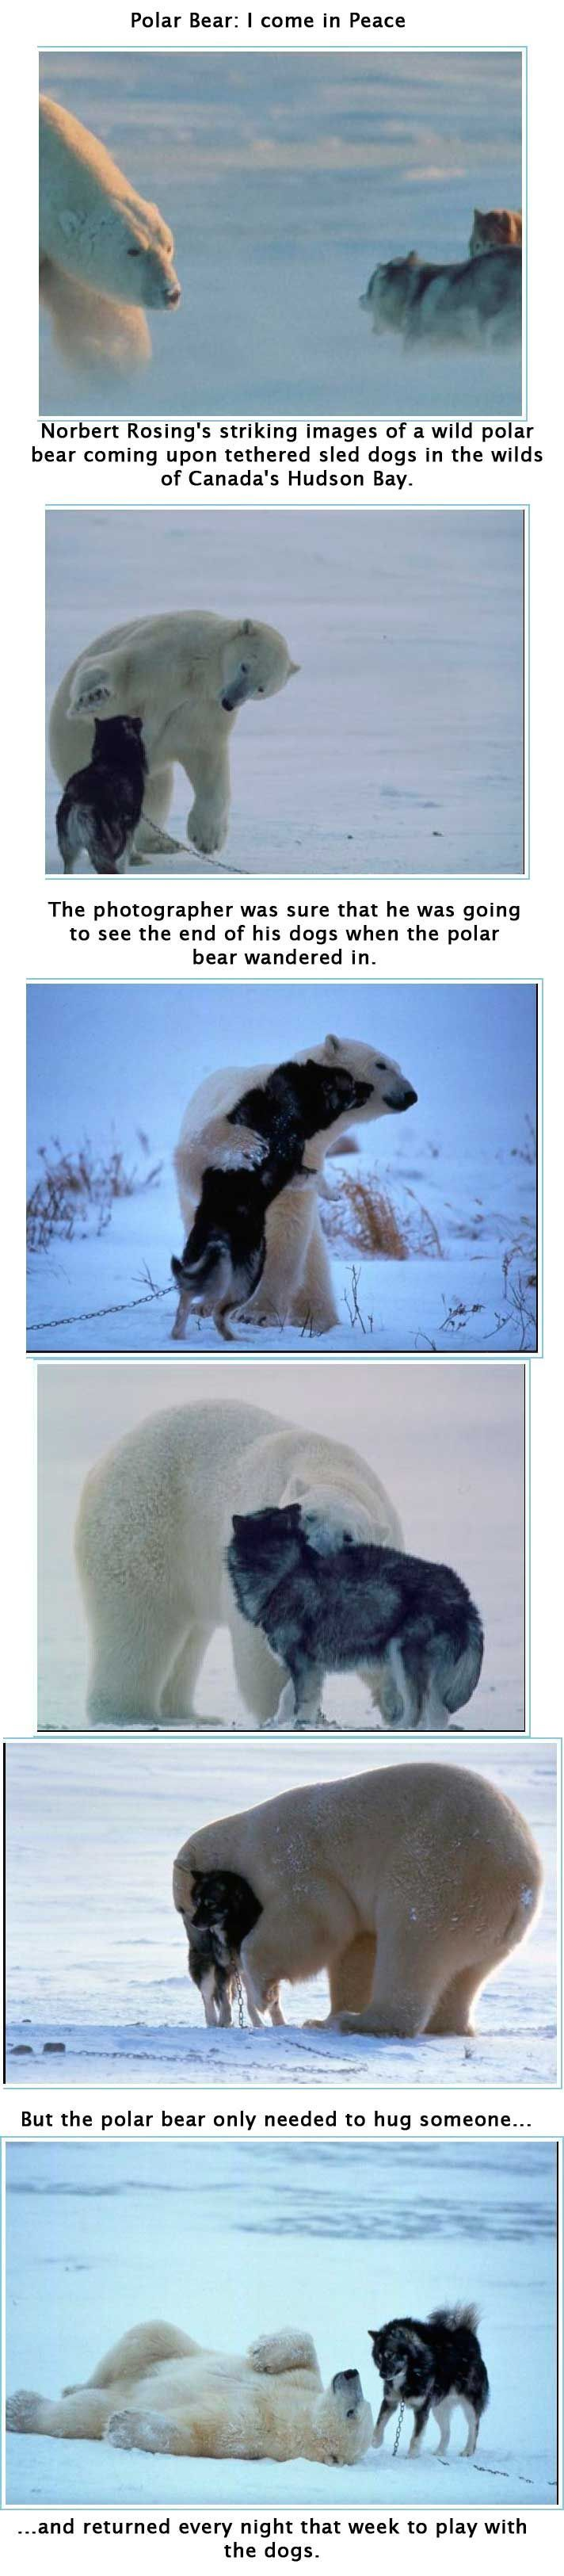 This is amazing... polar bear meets dogs.